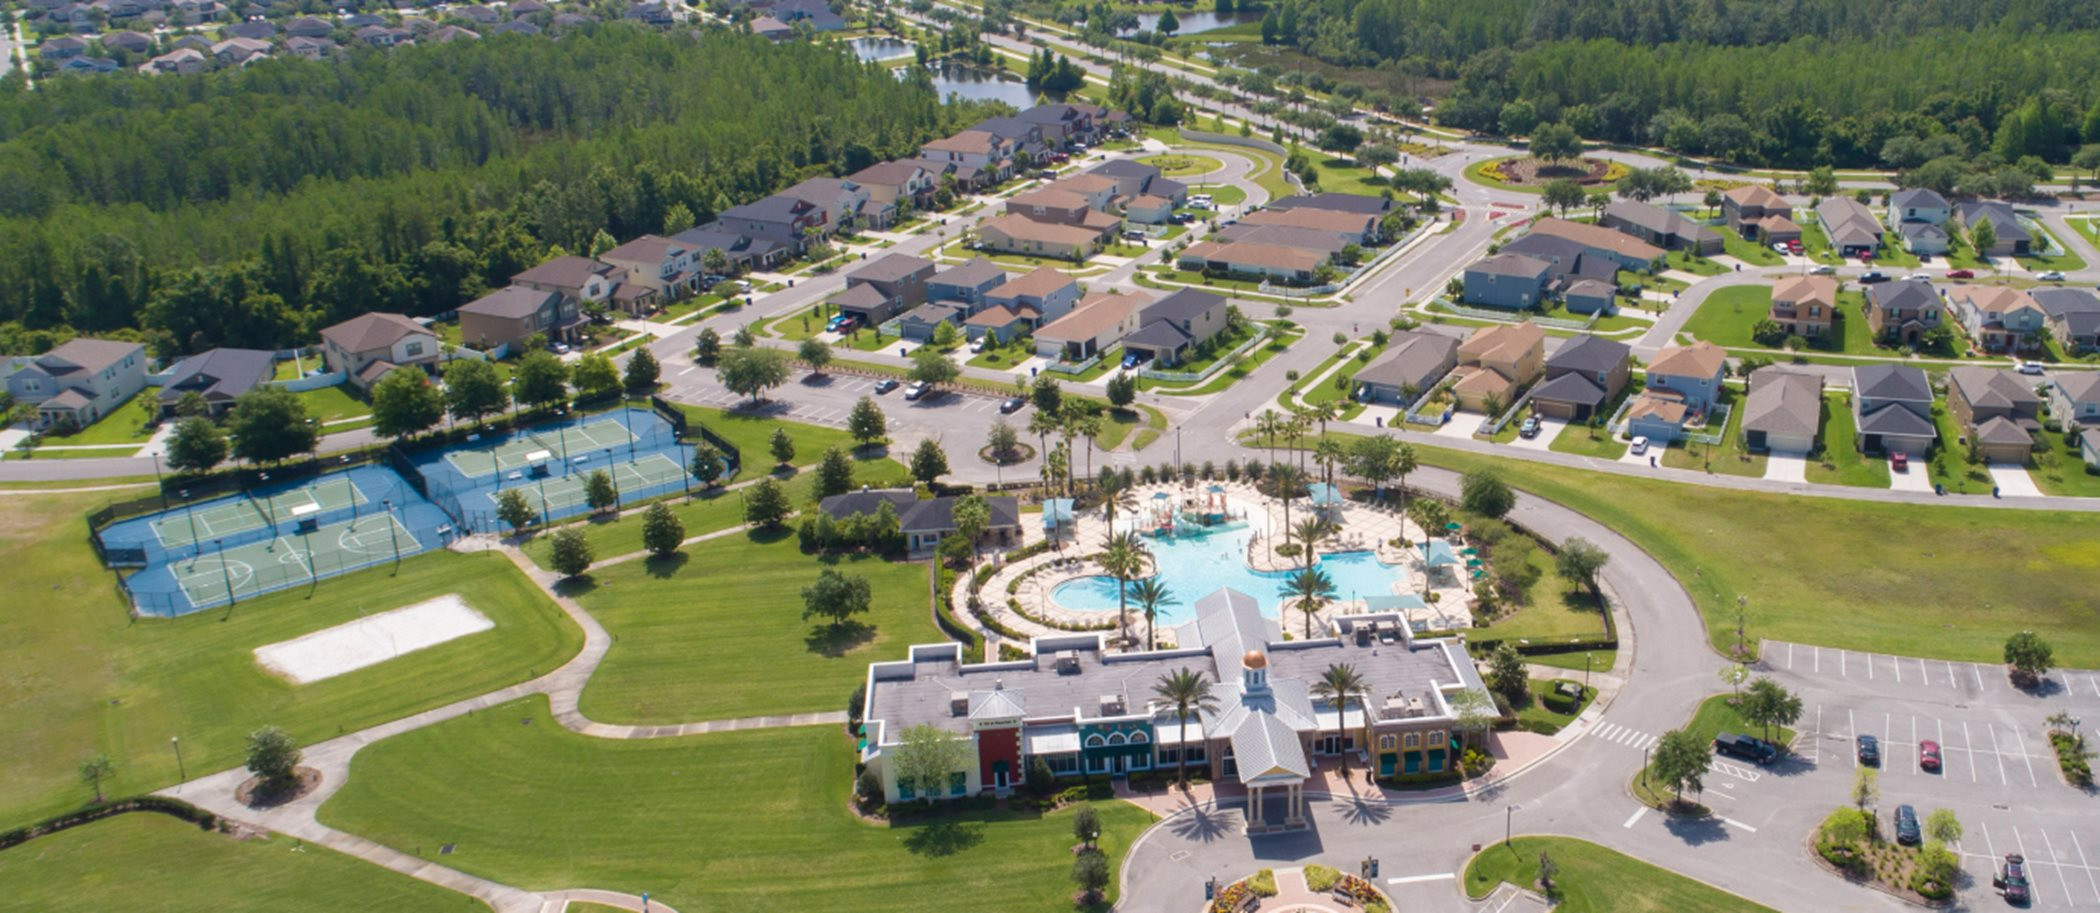 Aerial view of Connerton Clubhouse, pool and sports courts